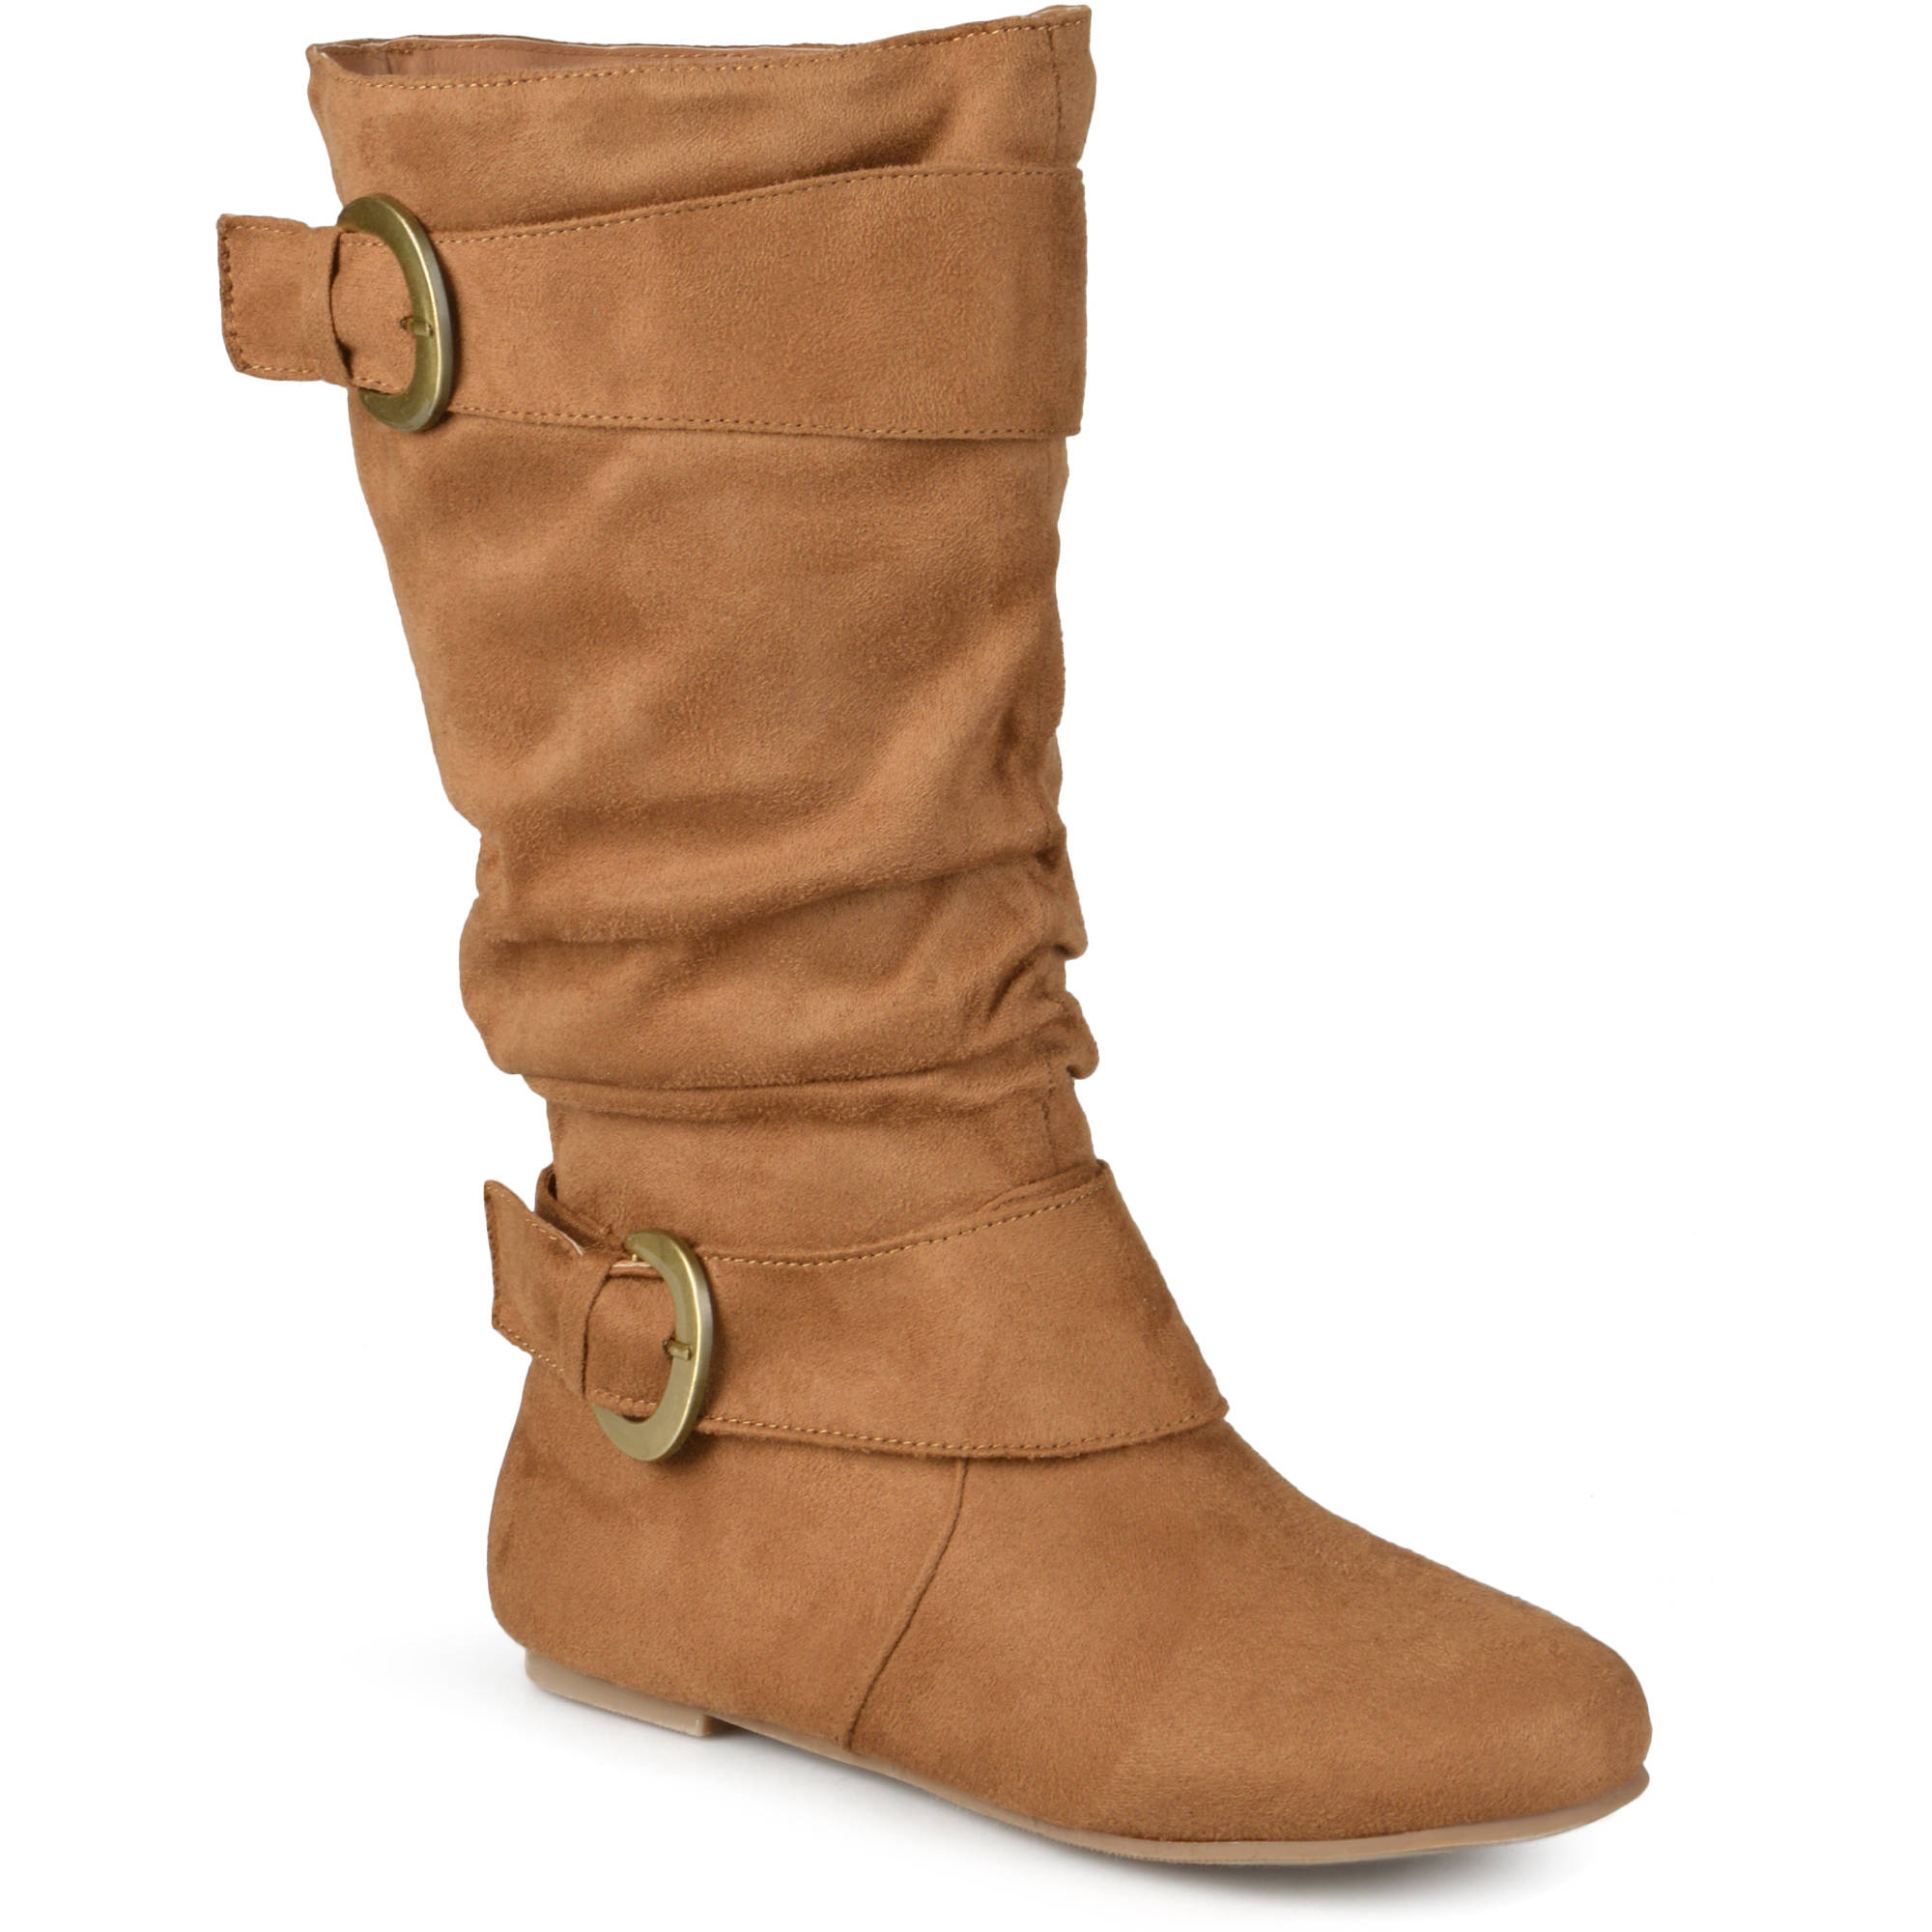 Brinley Co. Women's Perth Slouchy Wide Calf Boots